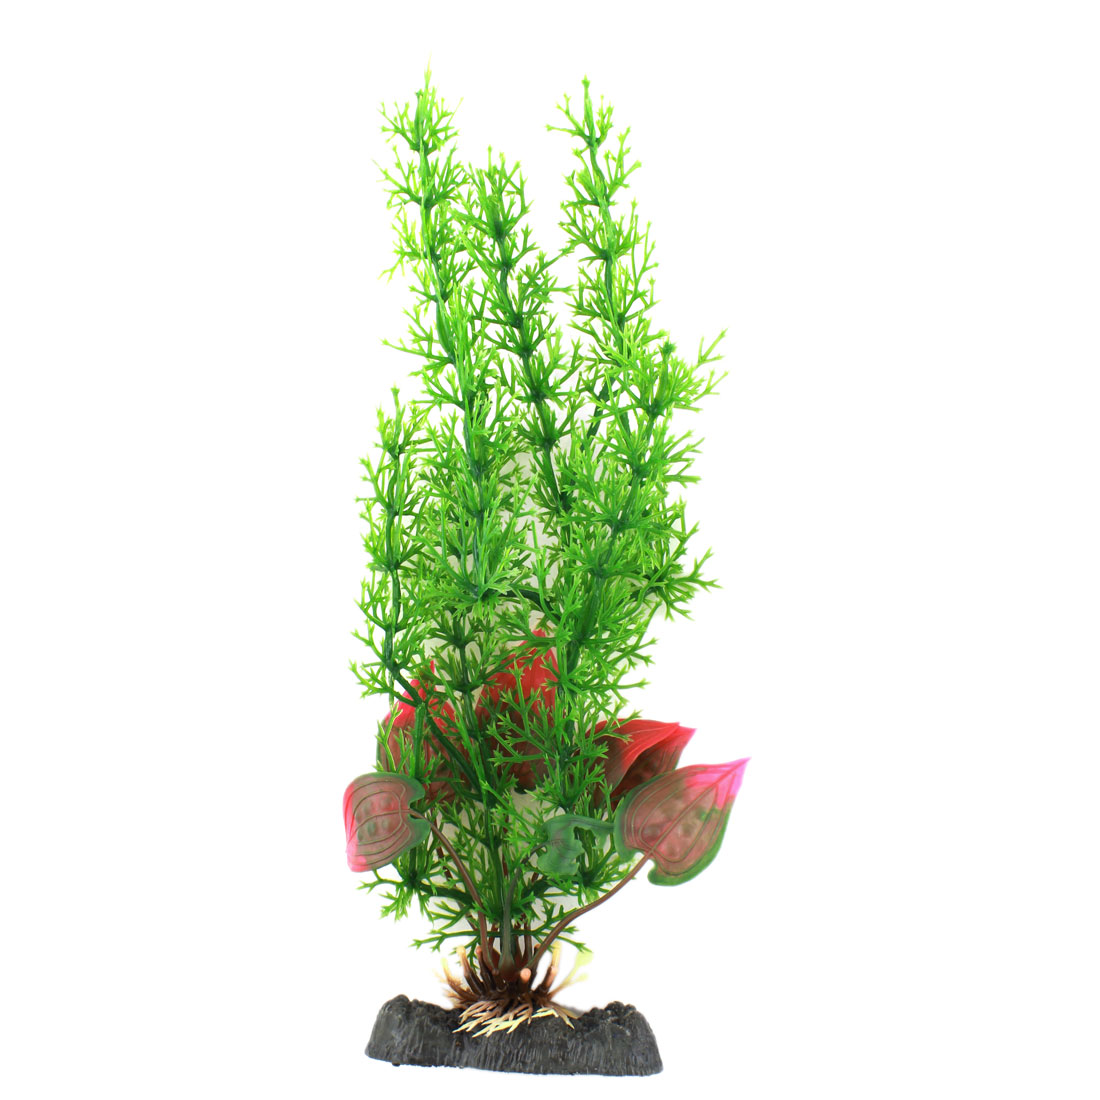 26cm High Green Plastic Artificial Fushsia Leaf Water Plant Decoration for Aquarium Fish Tank